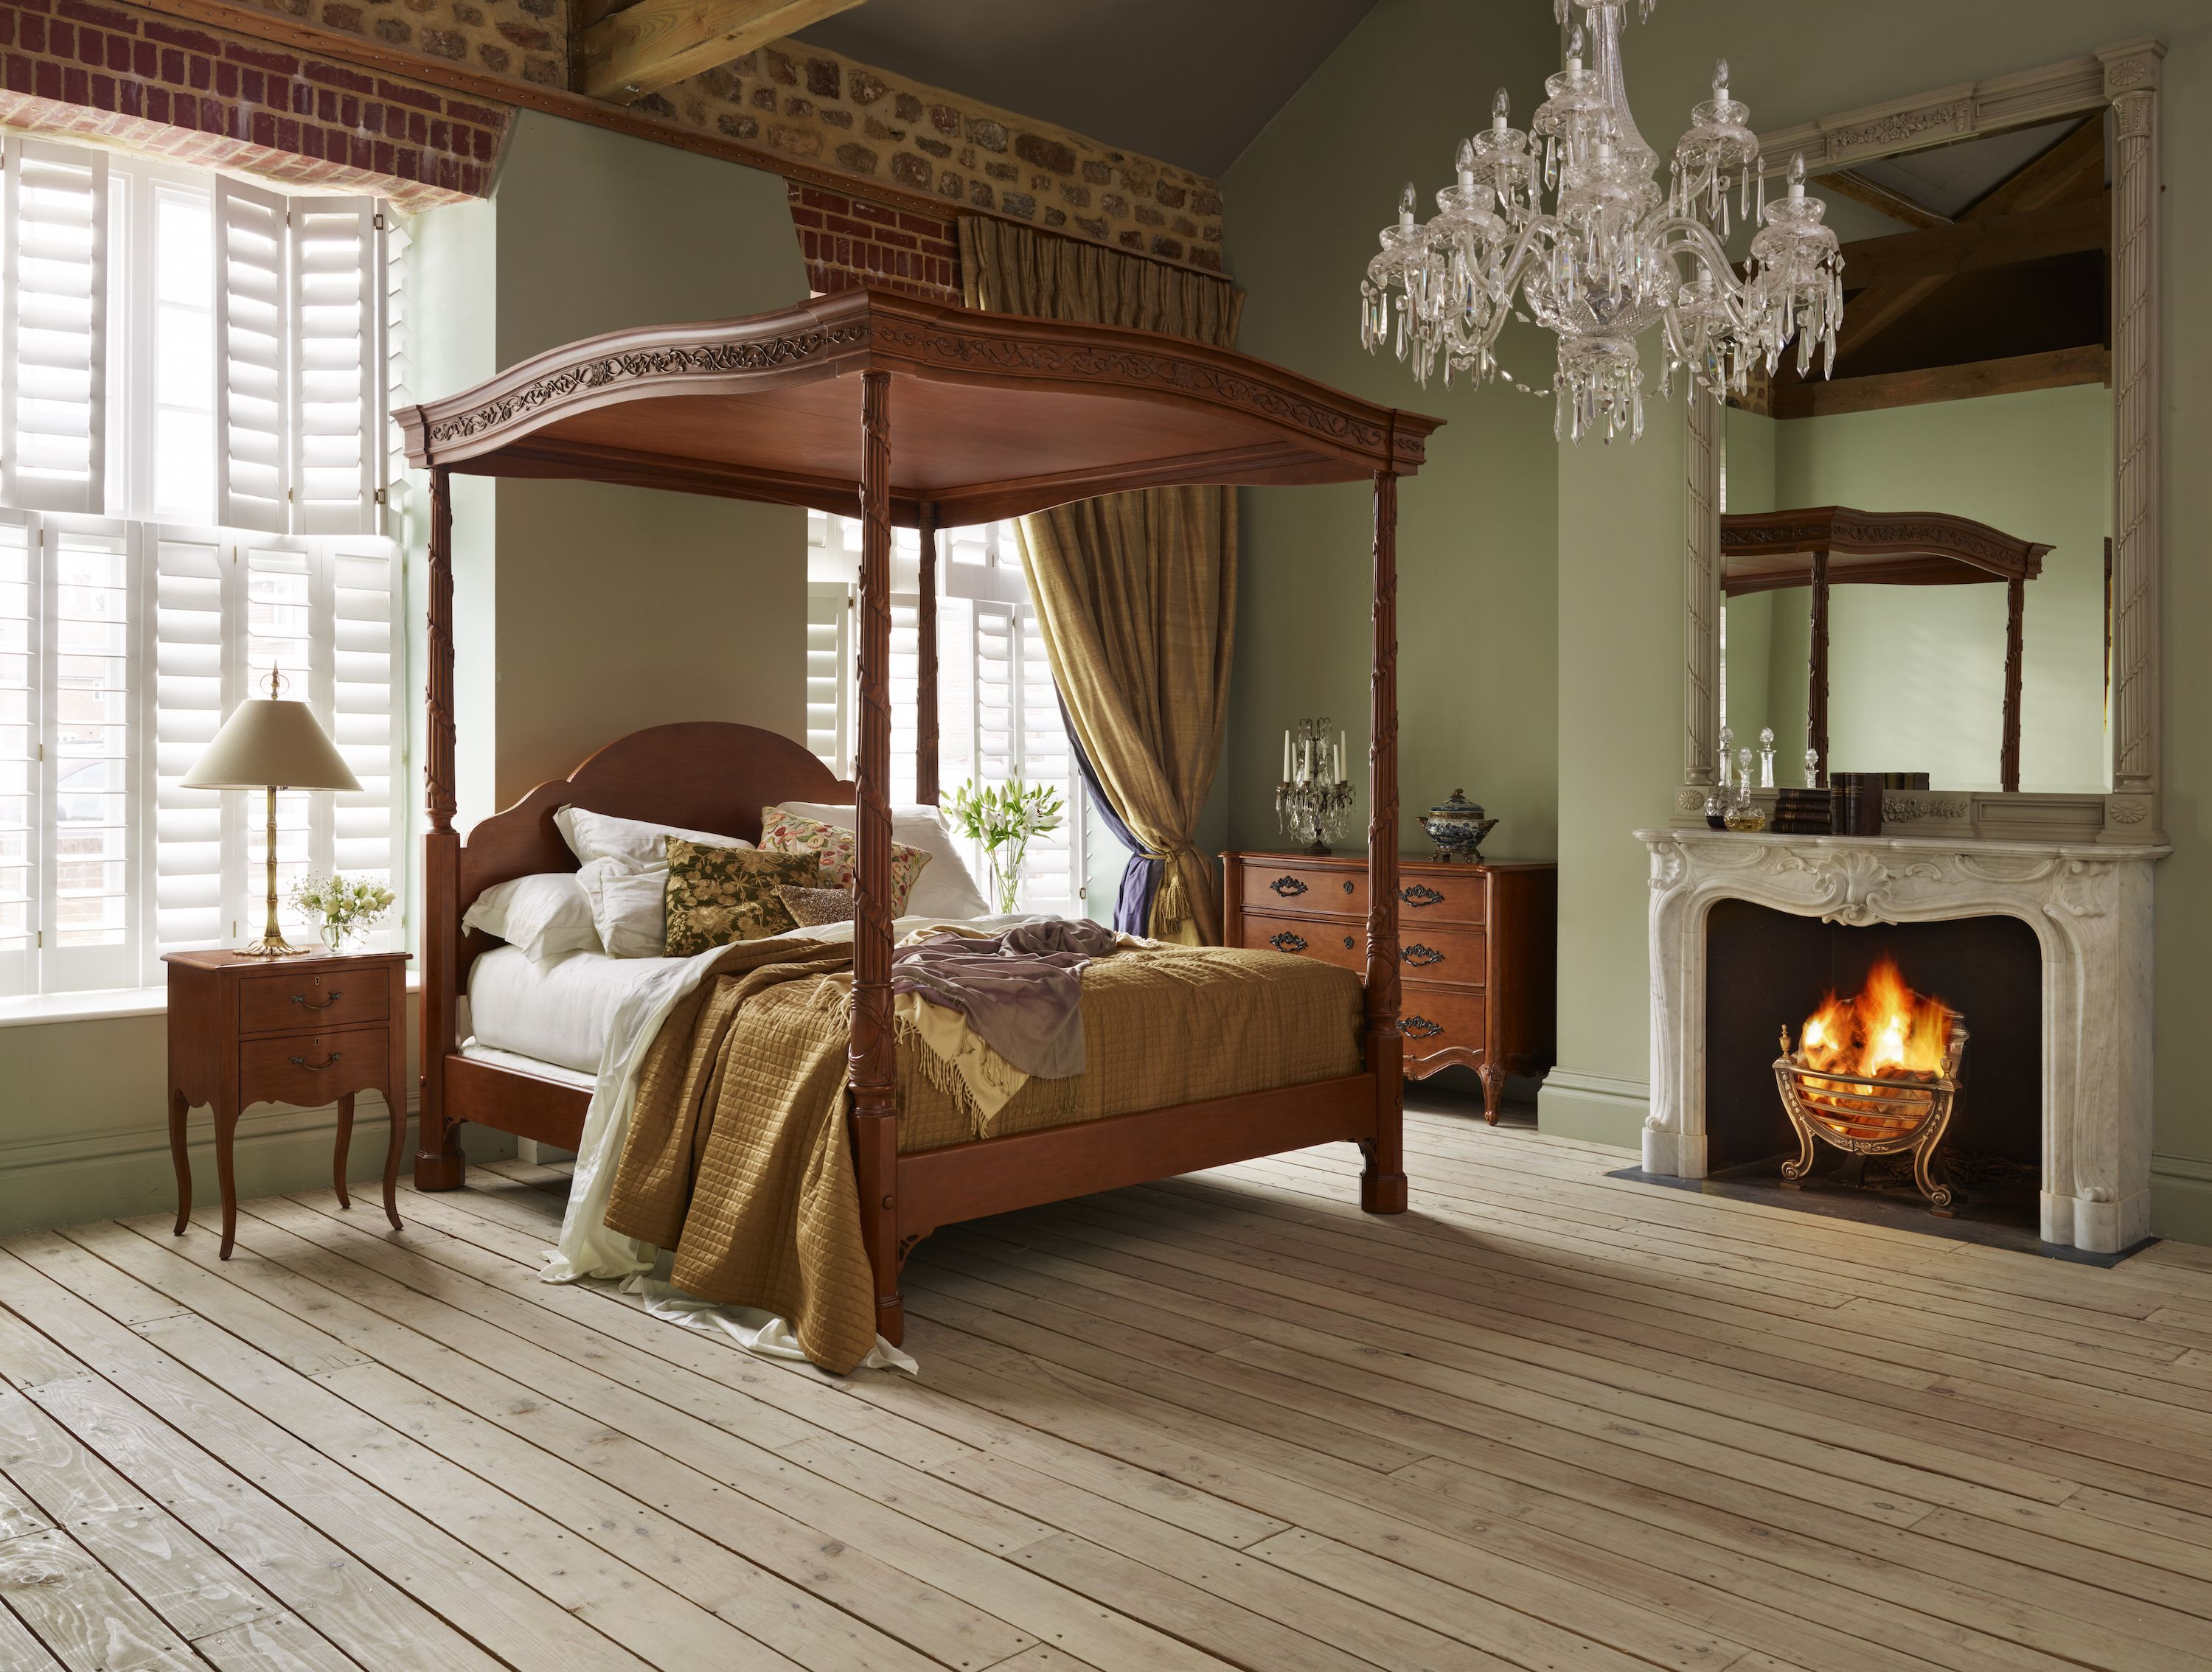 The Ribbons Four Poster Bed From And So To Bed